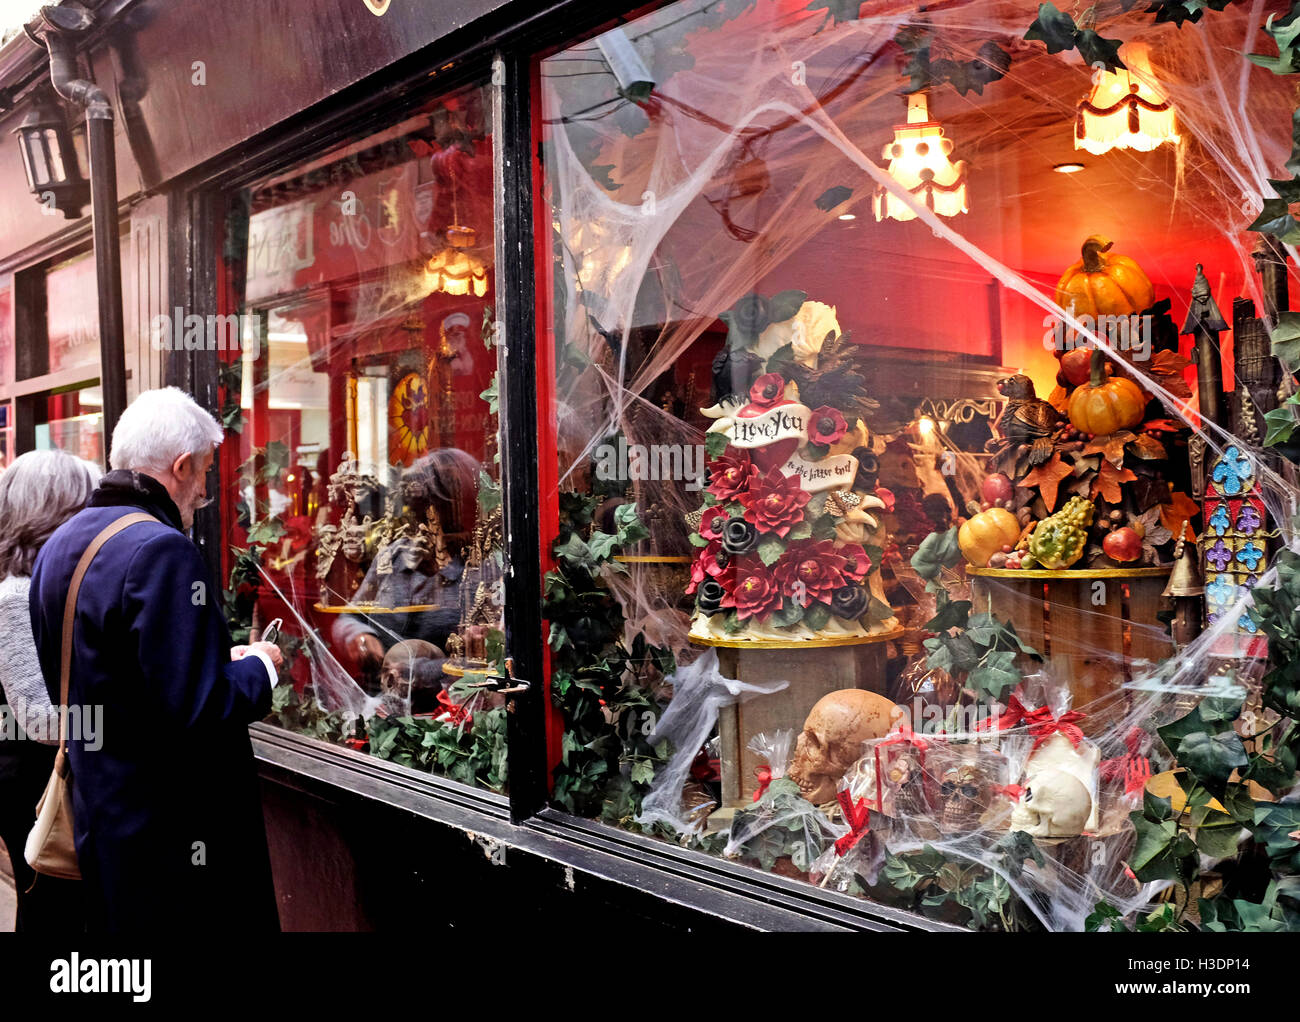 Brighton, UK. 6th October, 2016. Visitors admire the Halloween window display at the famous Choccywoccydoodah shop - Stock Image